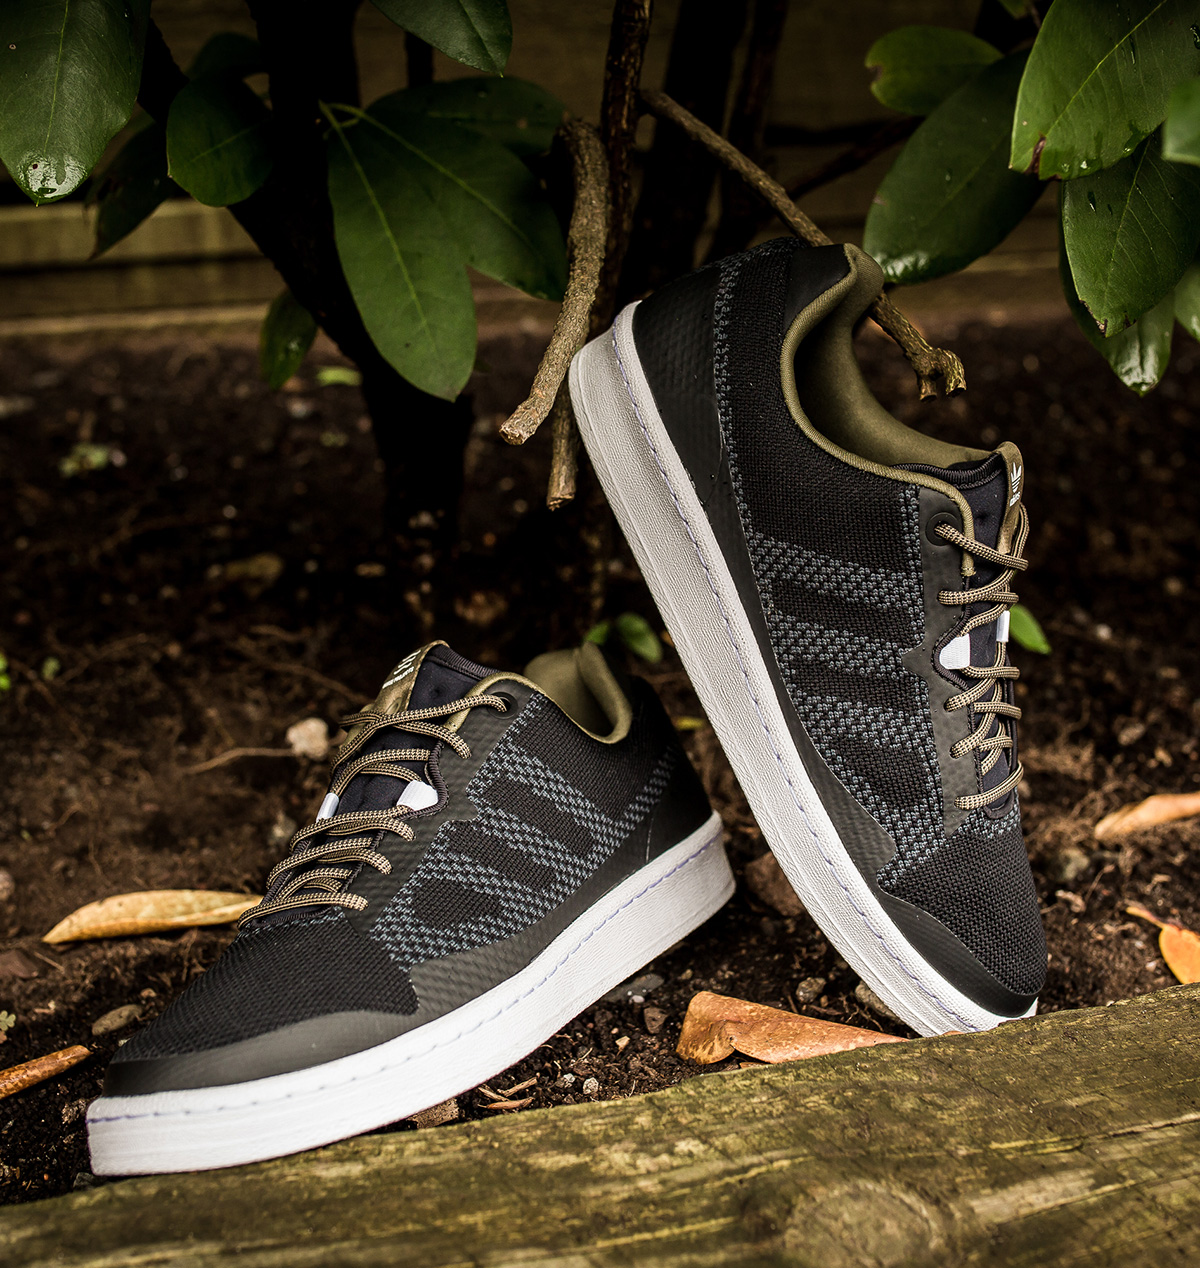 """new style 8151b f251a Global Release Date Norse Projects x adidas Consortium """"Layers"""" Collection ADIDAS  CONSORTIUM X NORSE PROJECTS TERREX AGRAVIC ..."""